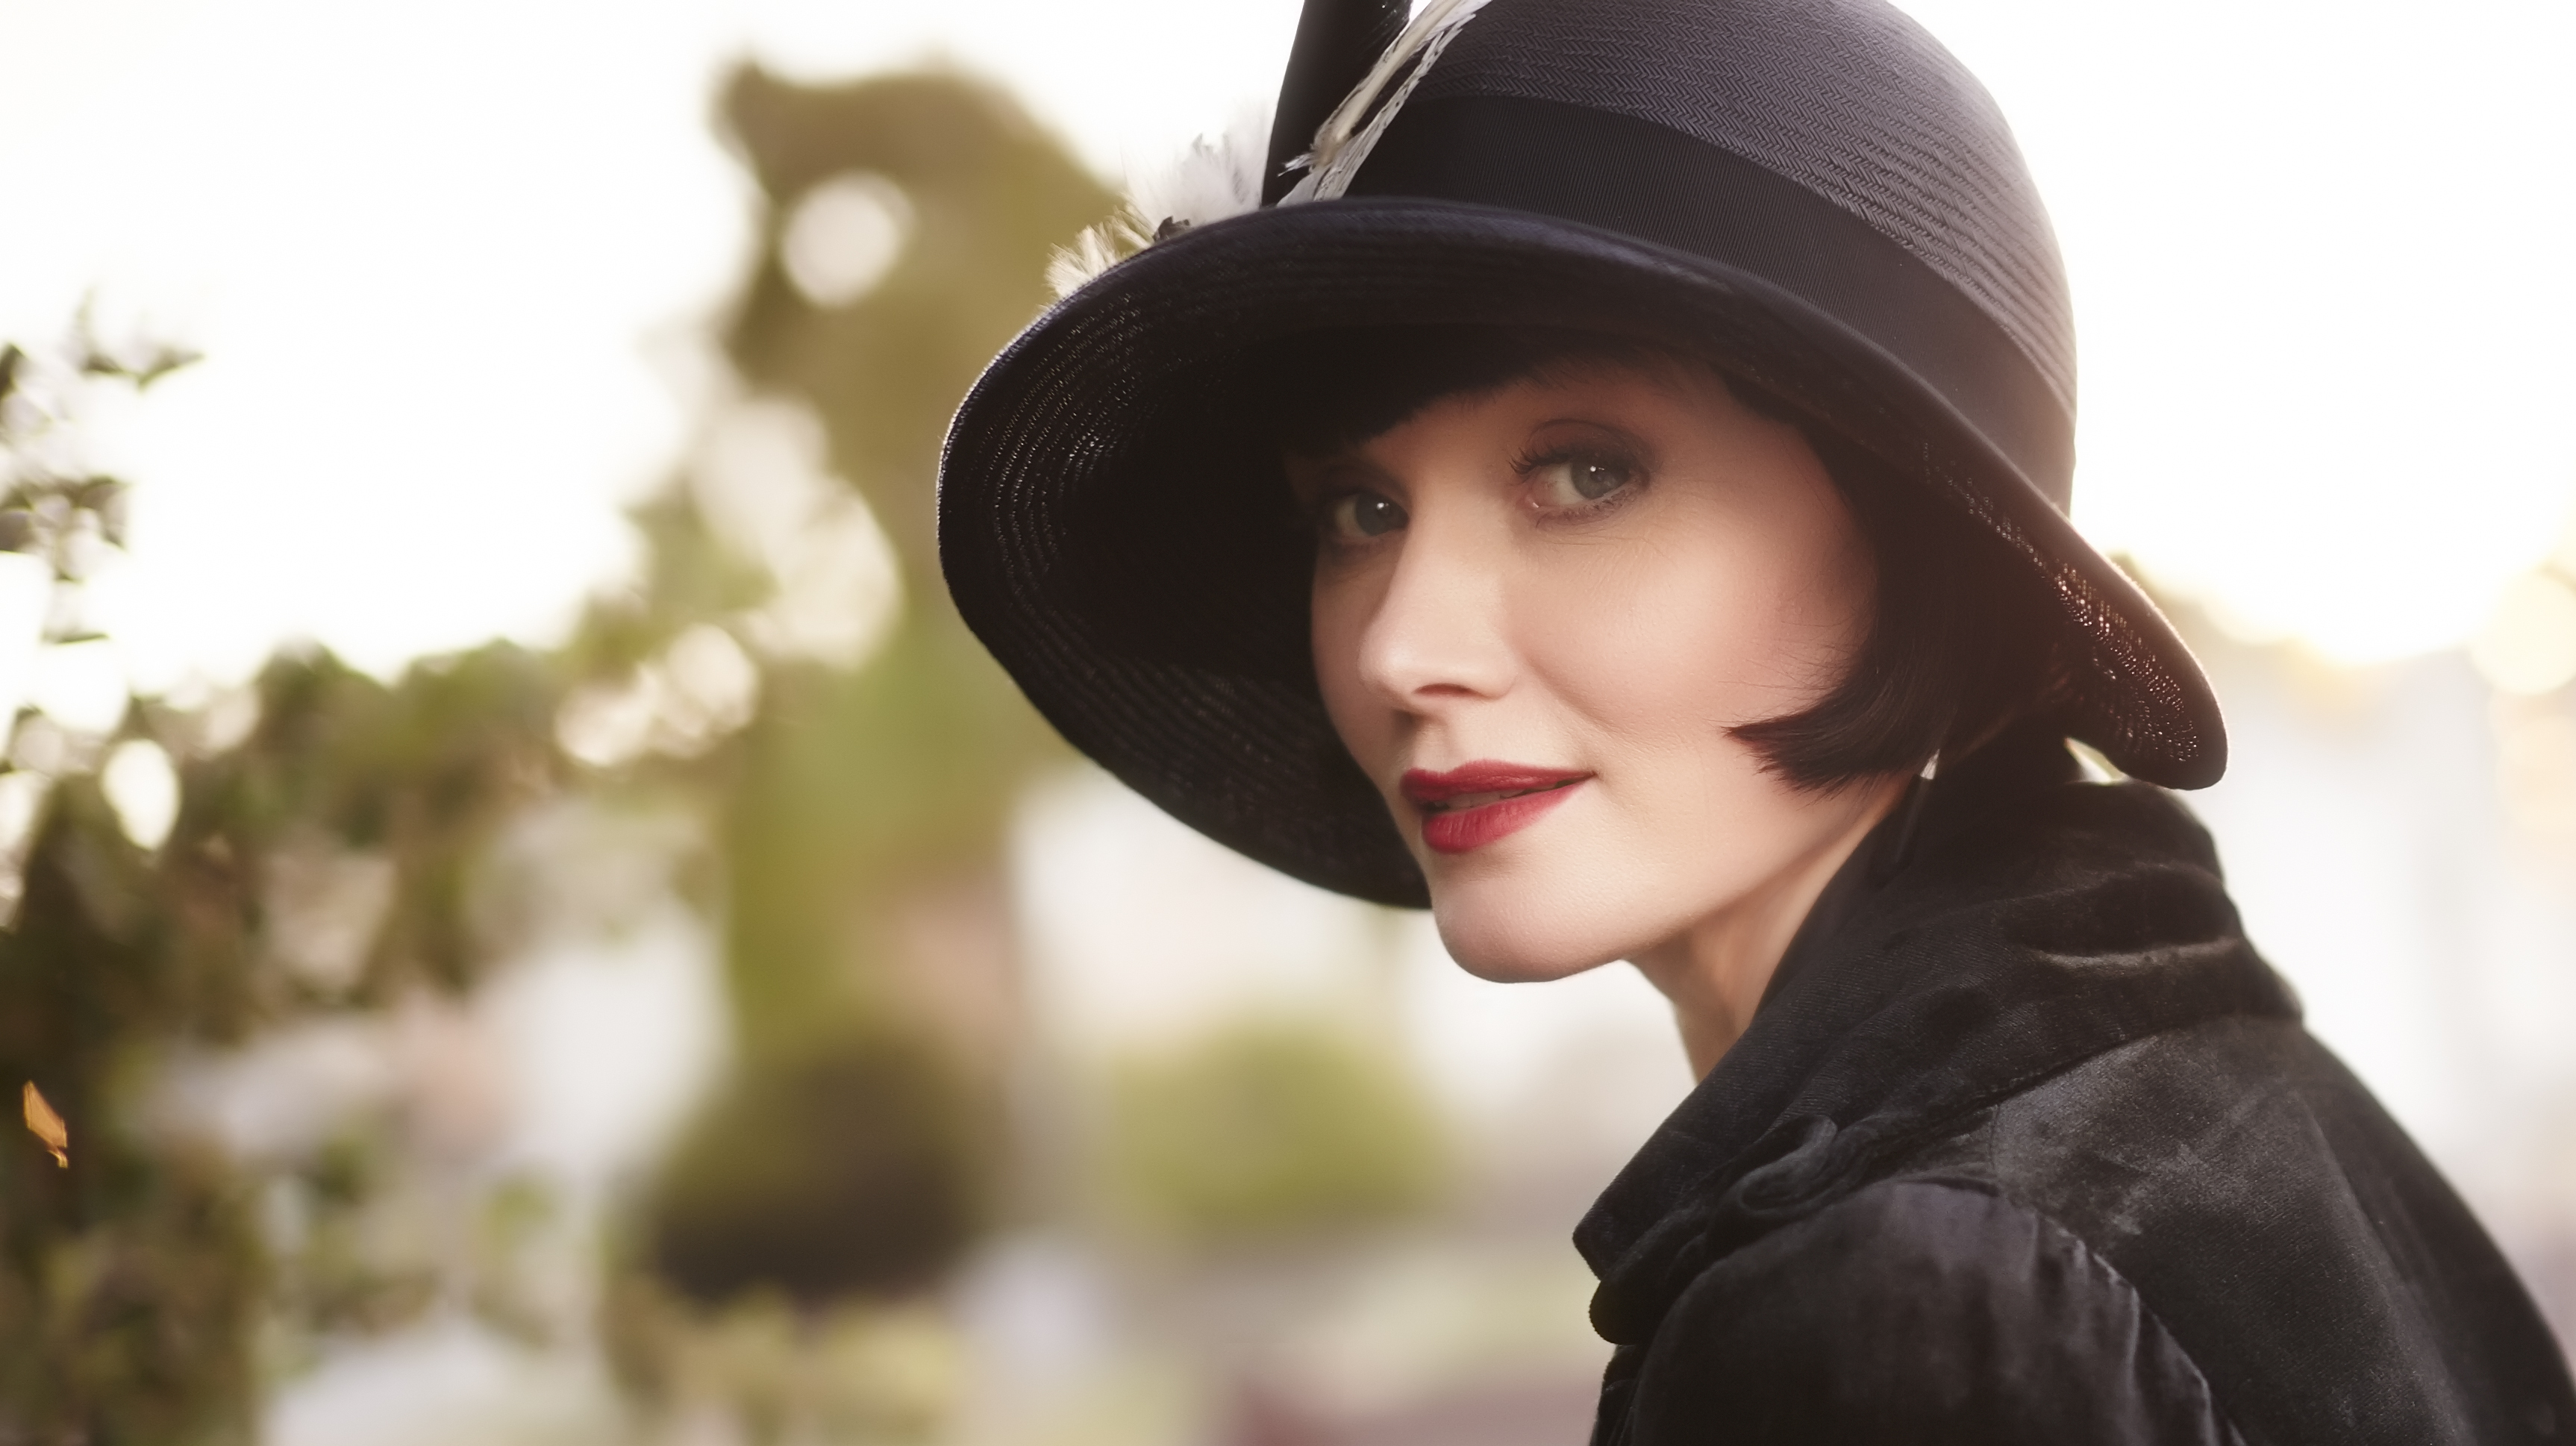 essie davis interviewessie davis game of thrones, essie davis horoscope, essie davis matrix, essie davis assassin's creed, essie davis instagram, essie davis agent, essie davis gif hunt, essie davis date of birth, essie davis, essie davis imdb, essie davis photos, essie davis miss fisher, essie davis interview, essie davis biography, essie davis wiki, essie davis babadook, essie davis facebook, essie davis birthday, essie davis nathan page, essie davis the slap